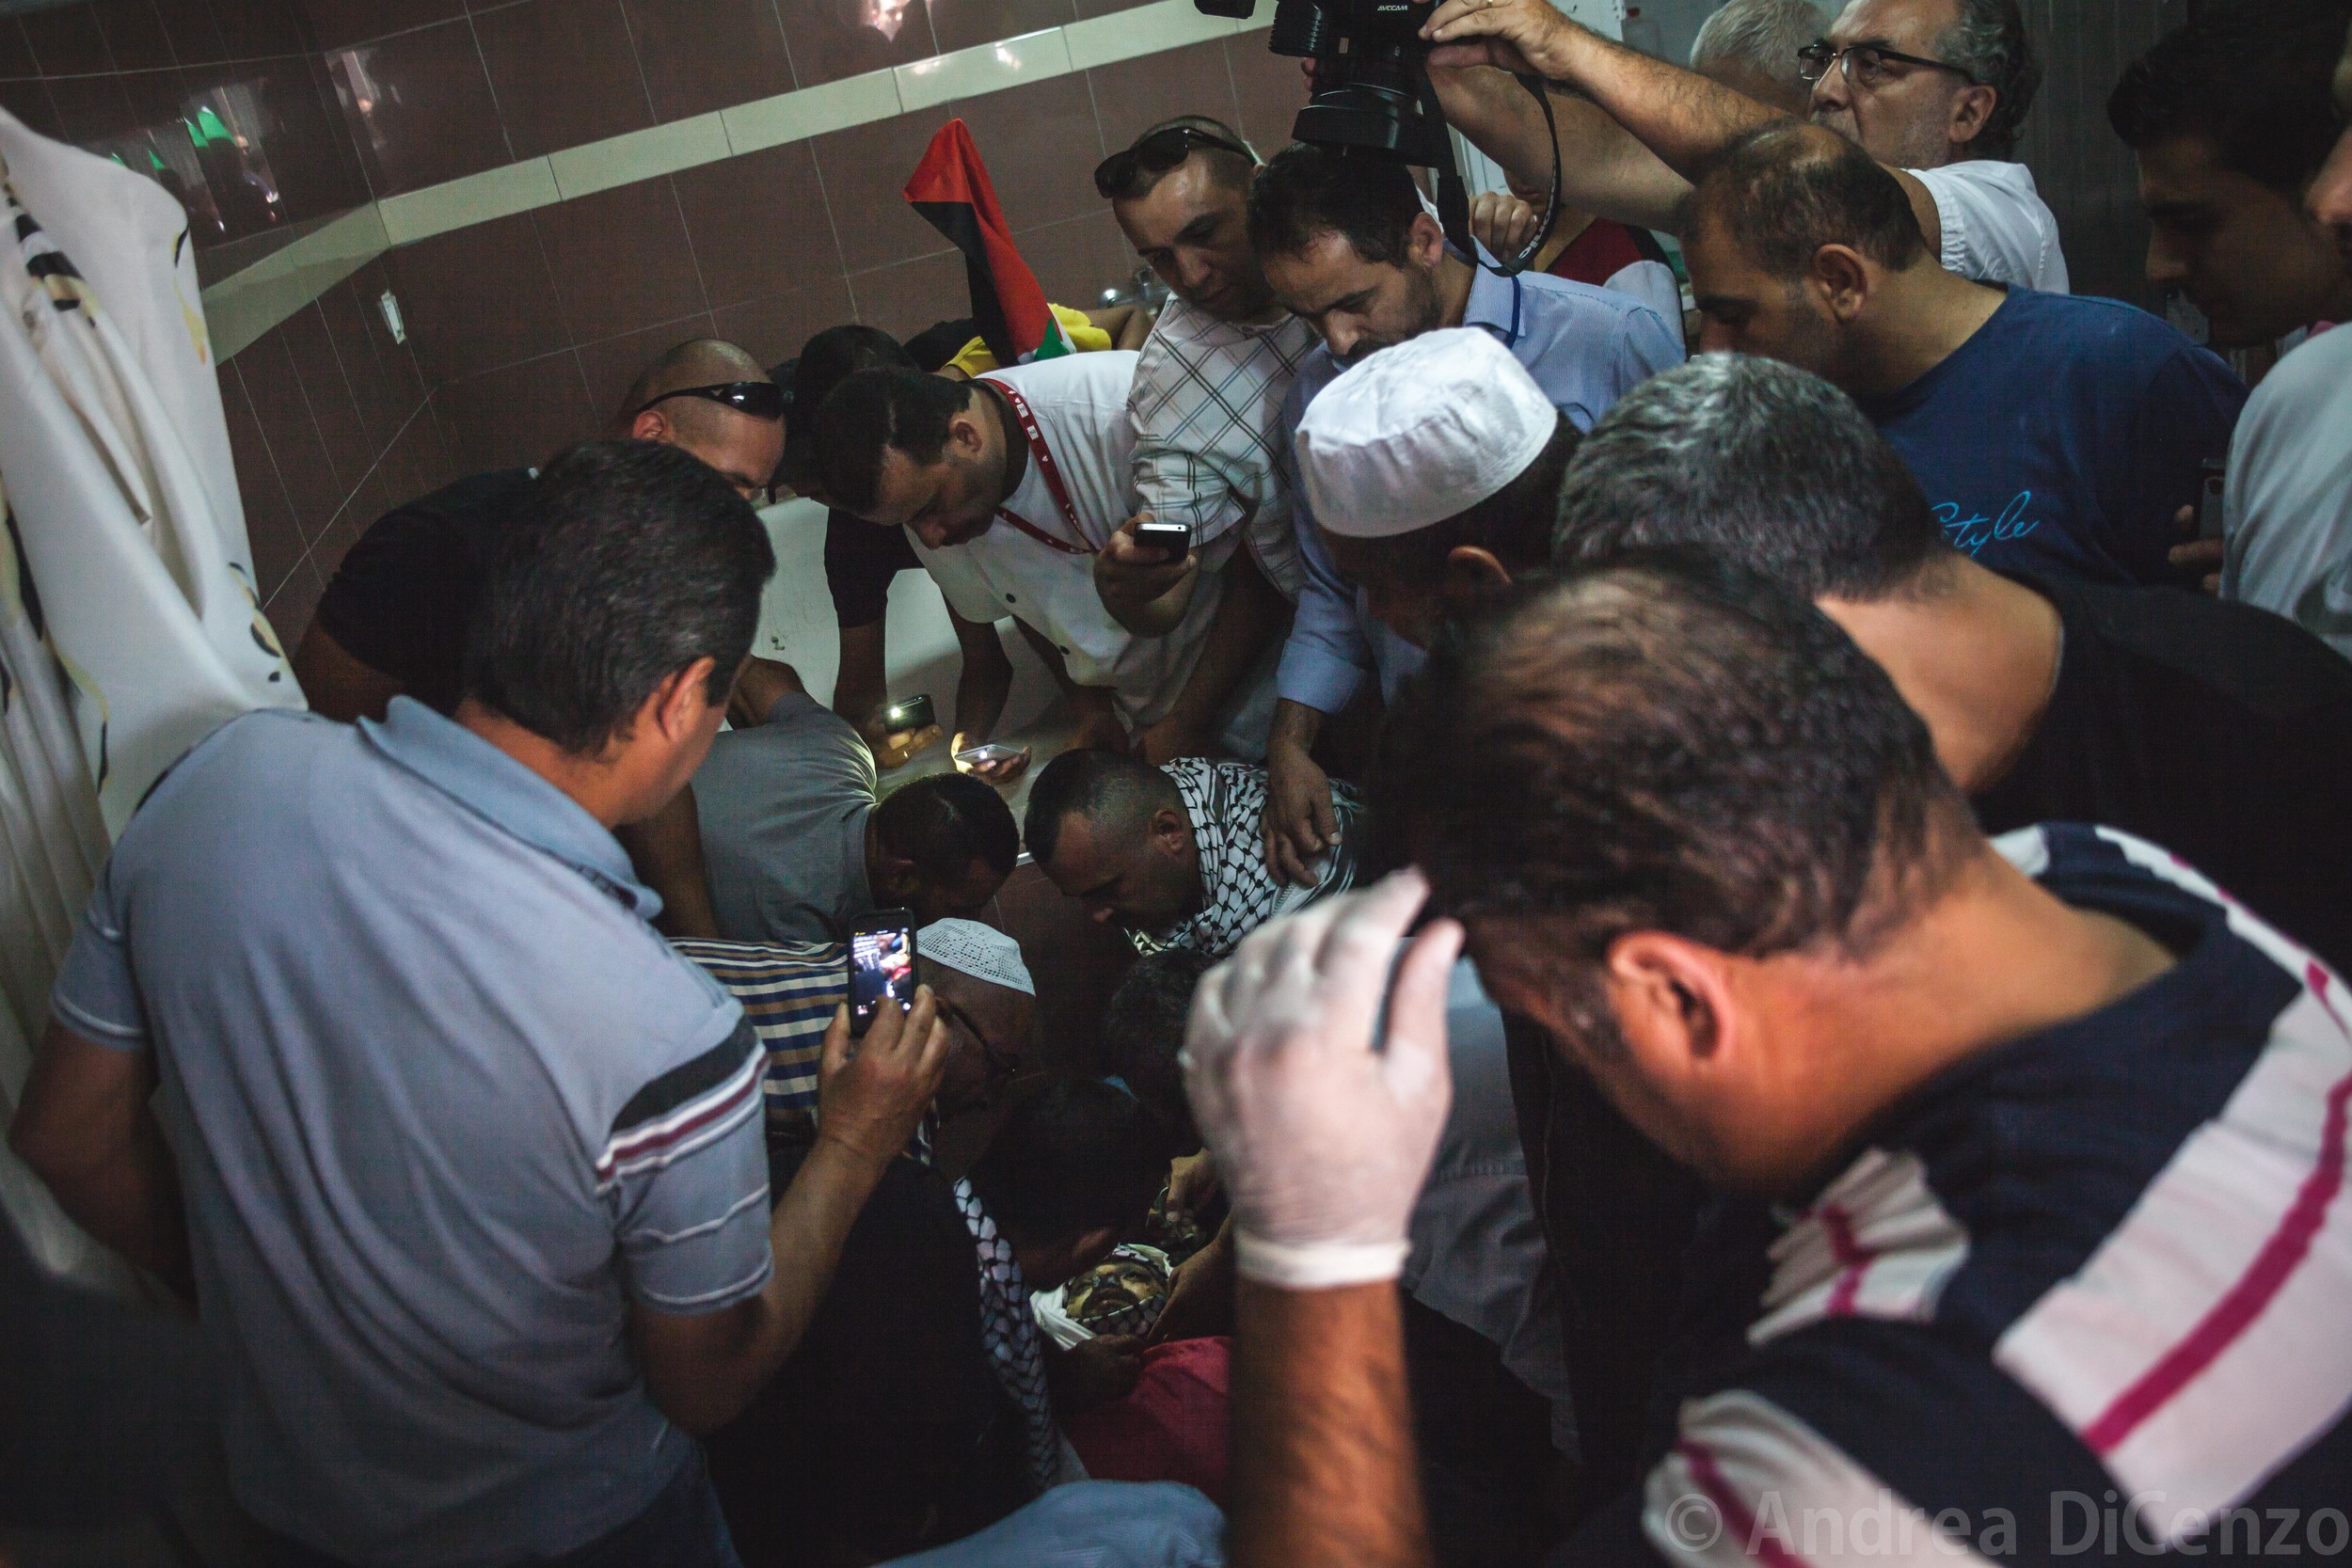 Mohammad is prepared for his funeral precession in Al MaKassed Hospital, East Jerusalembefore his body is transported back to Gaza for burial. The Gazan came in at 3am but did not make it through the night.